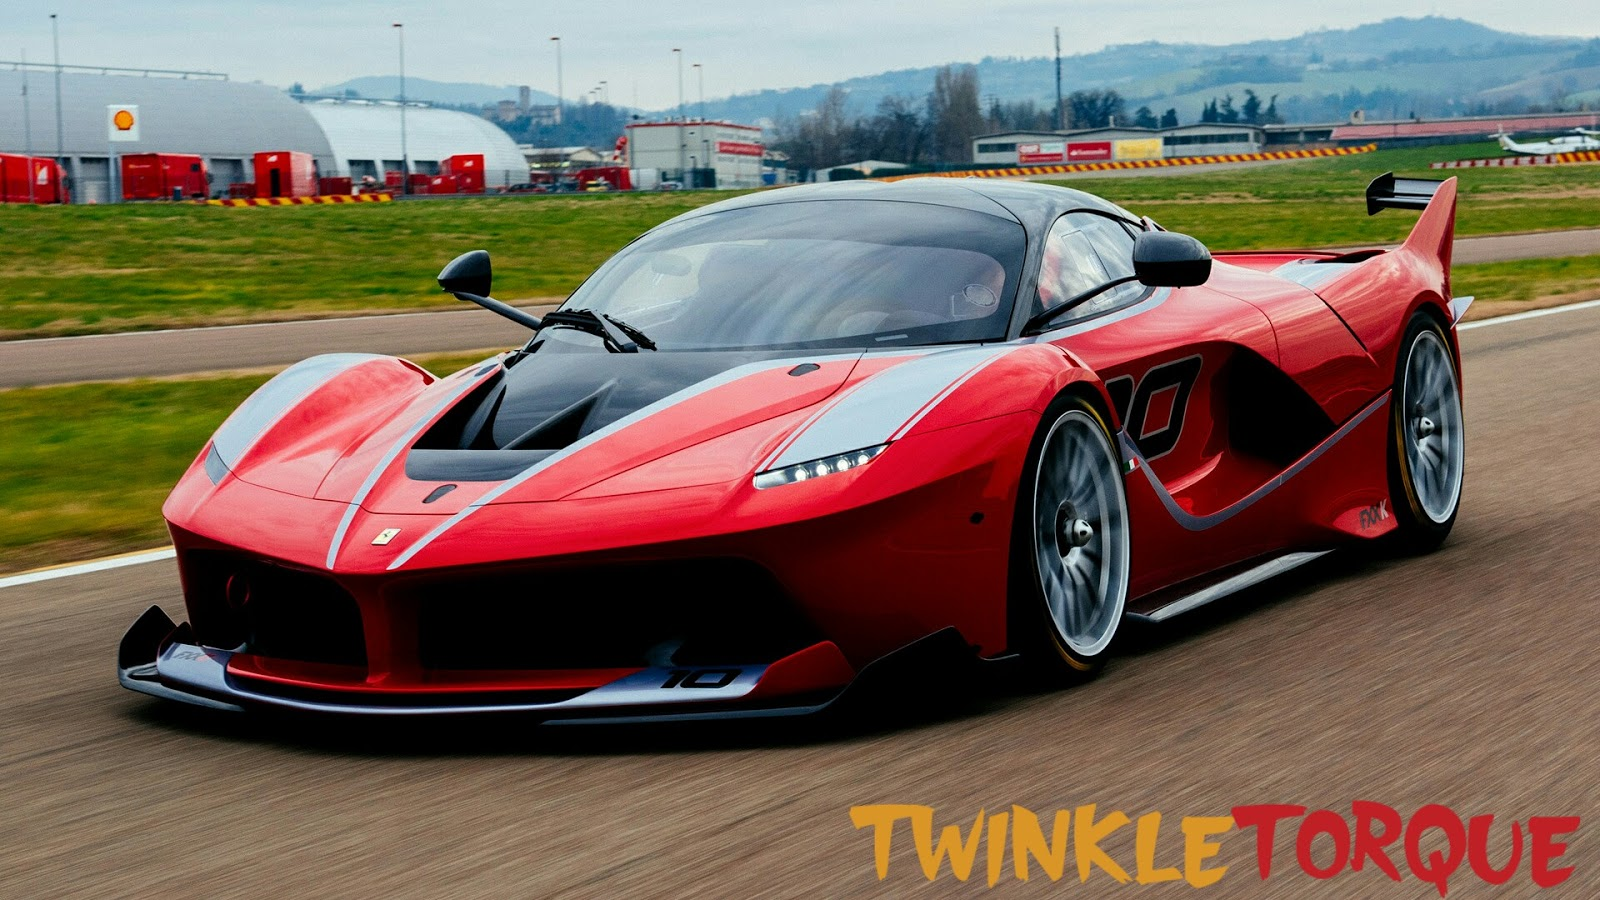 Most Expensive Car in the World - Twinkle Torque